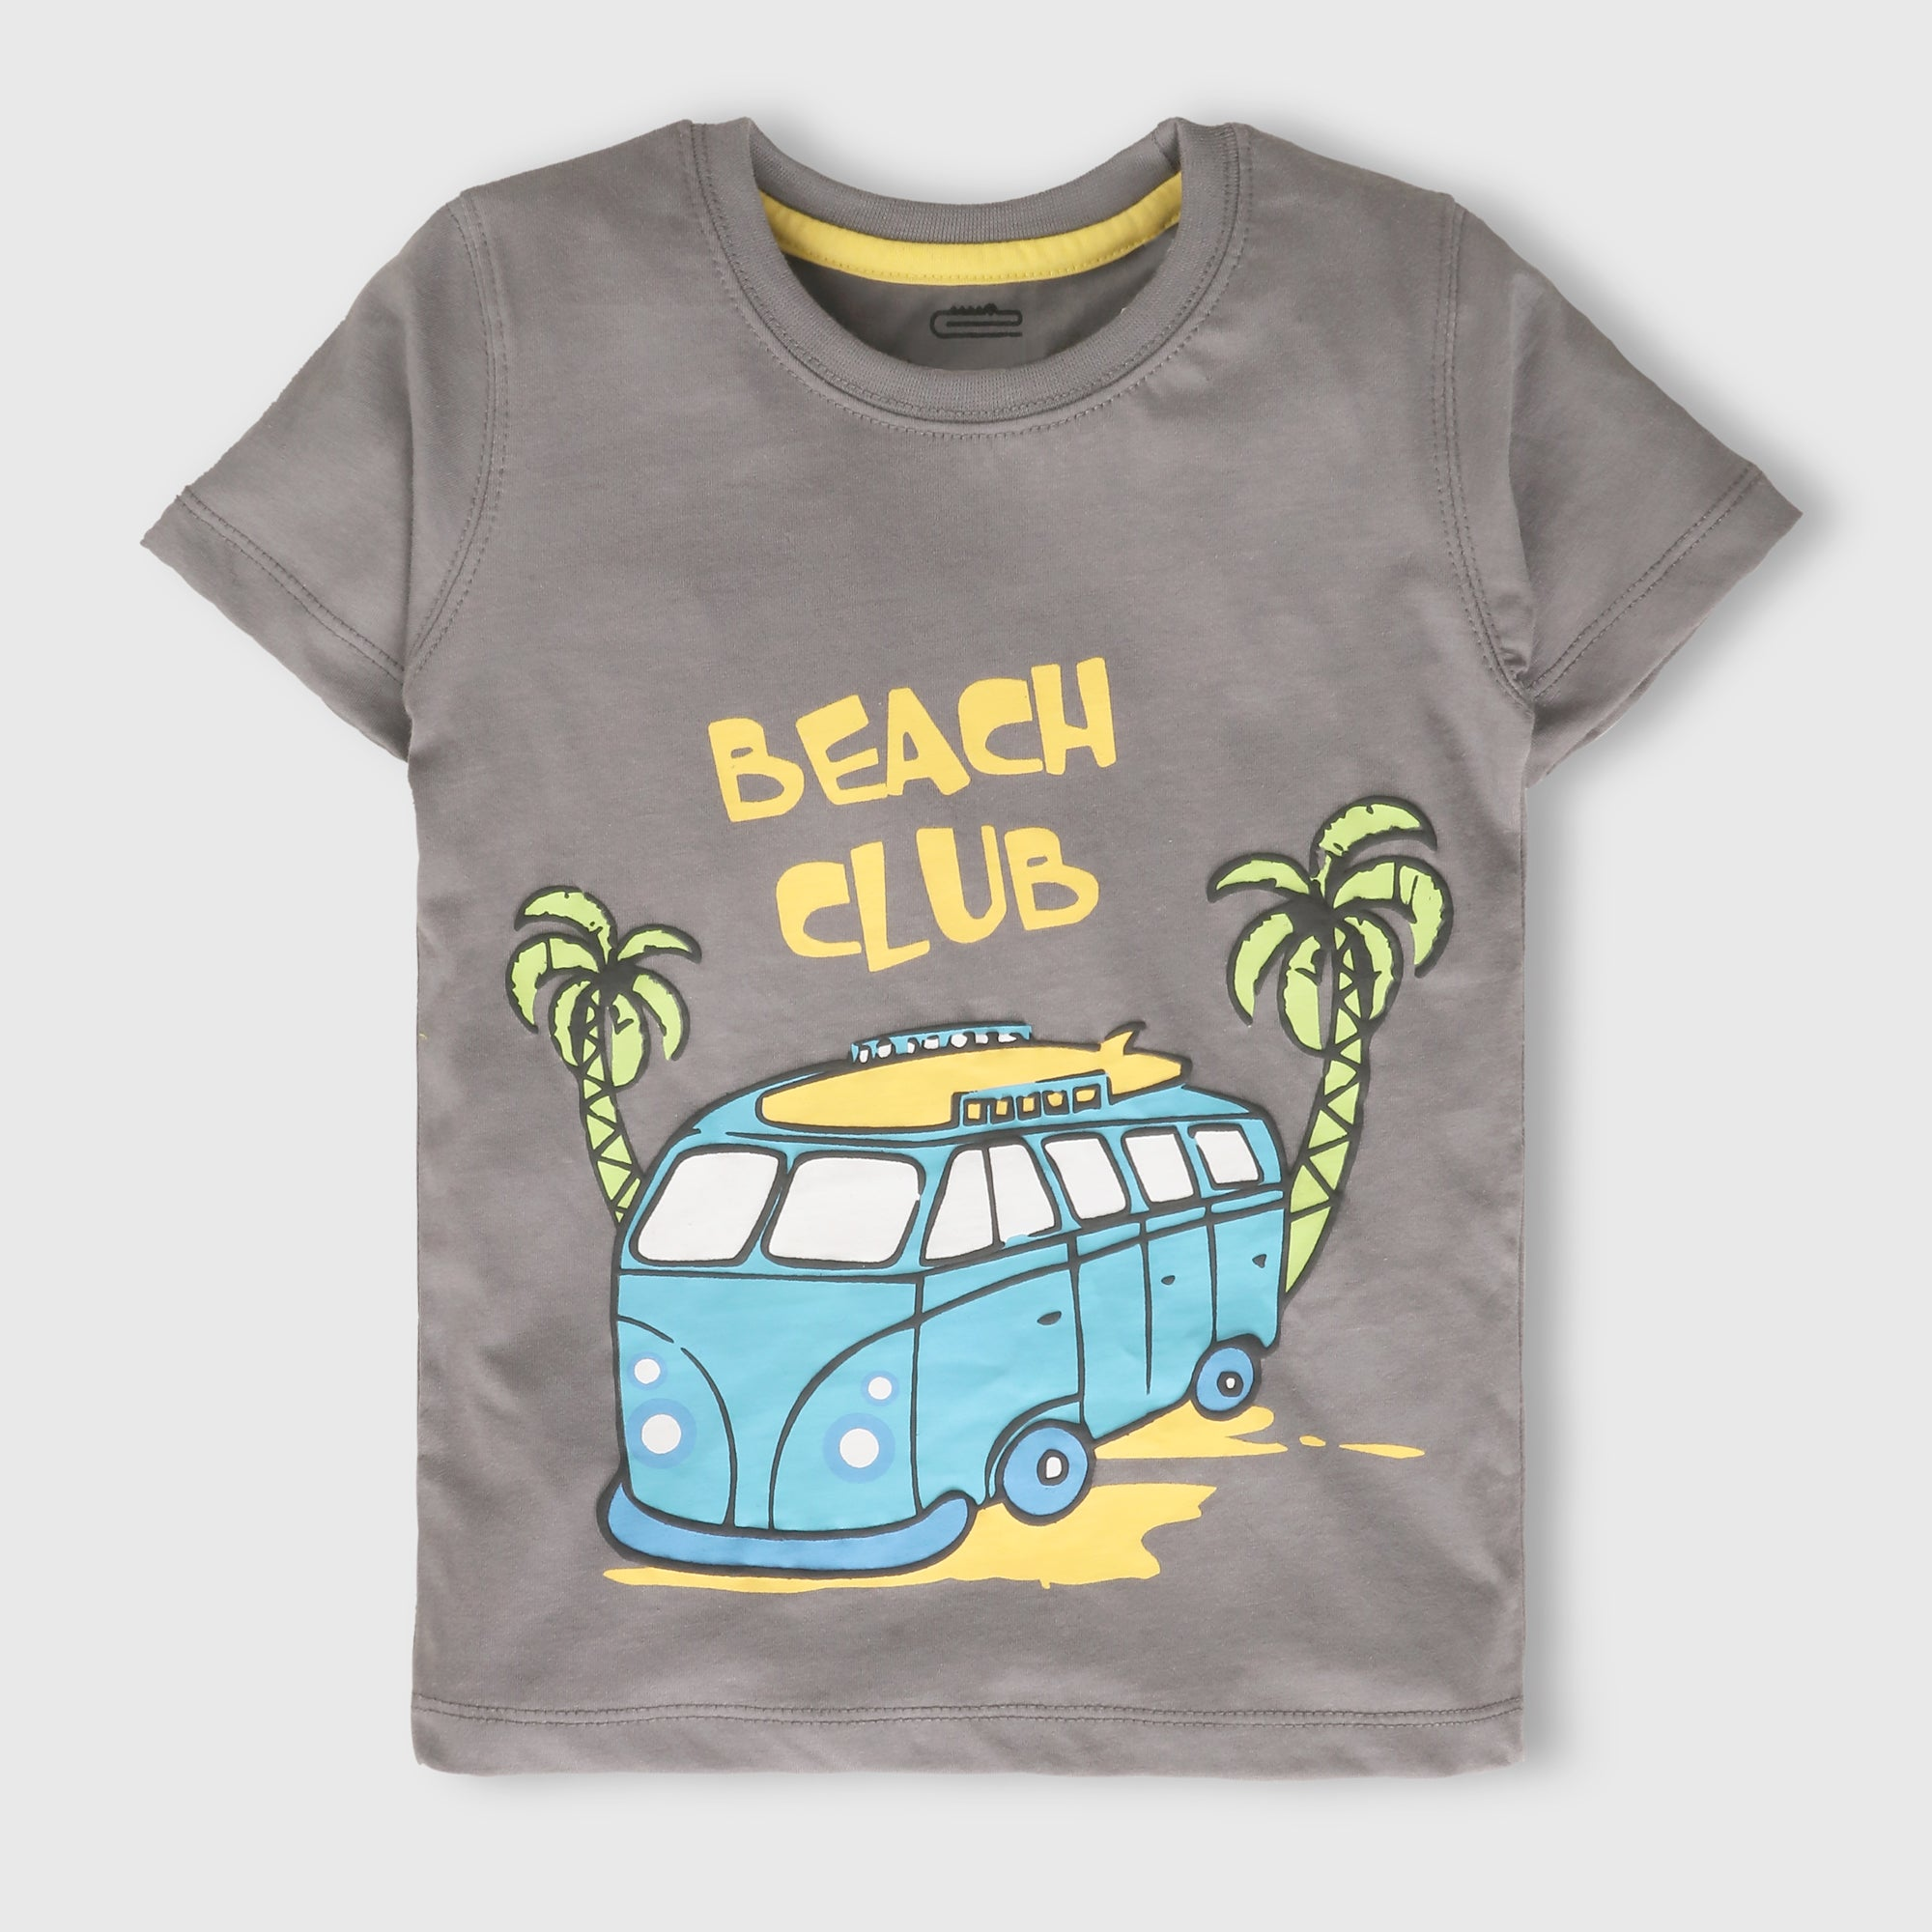 Beach Club T-Shirt